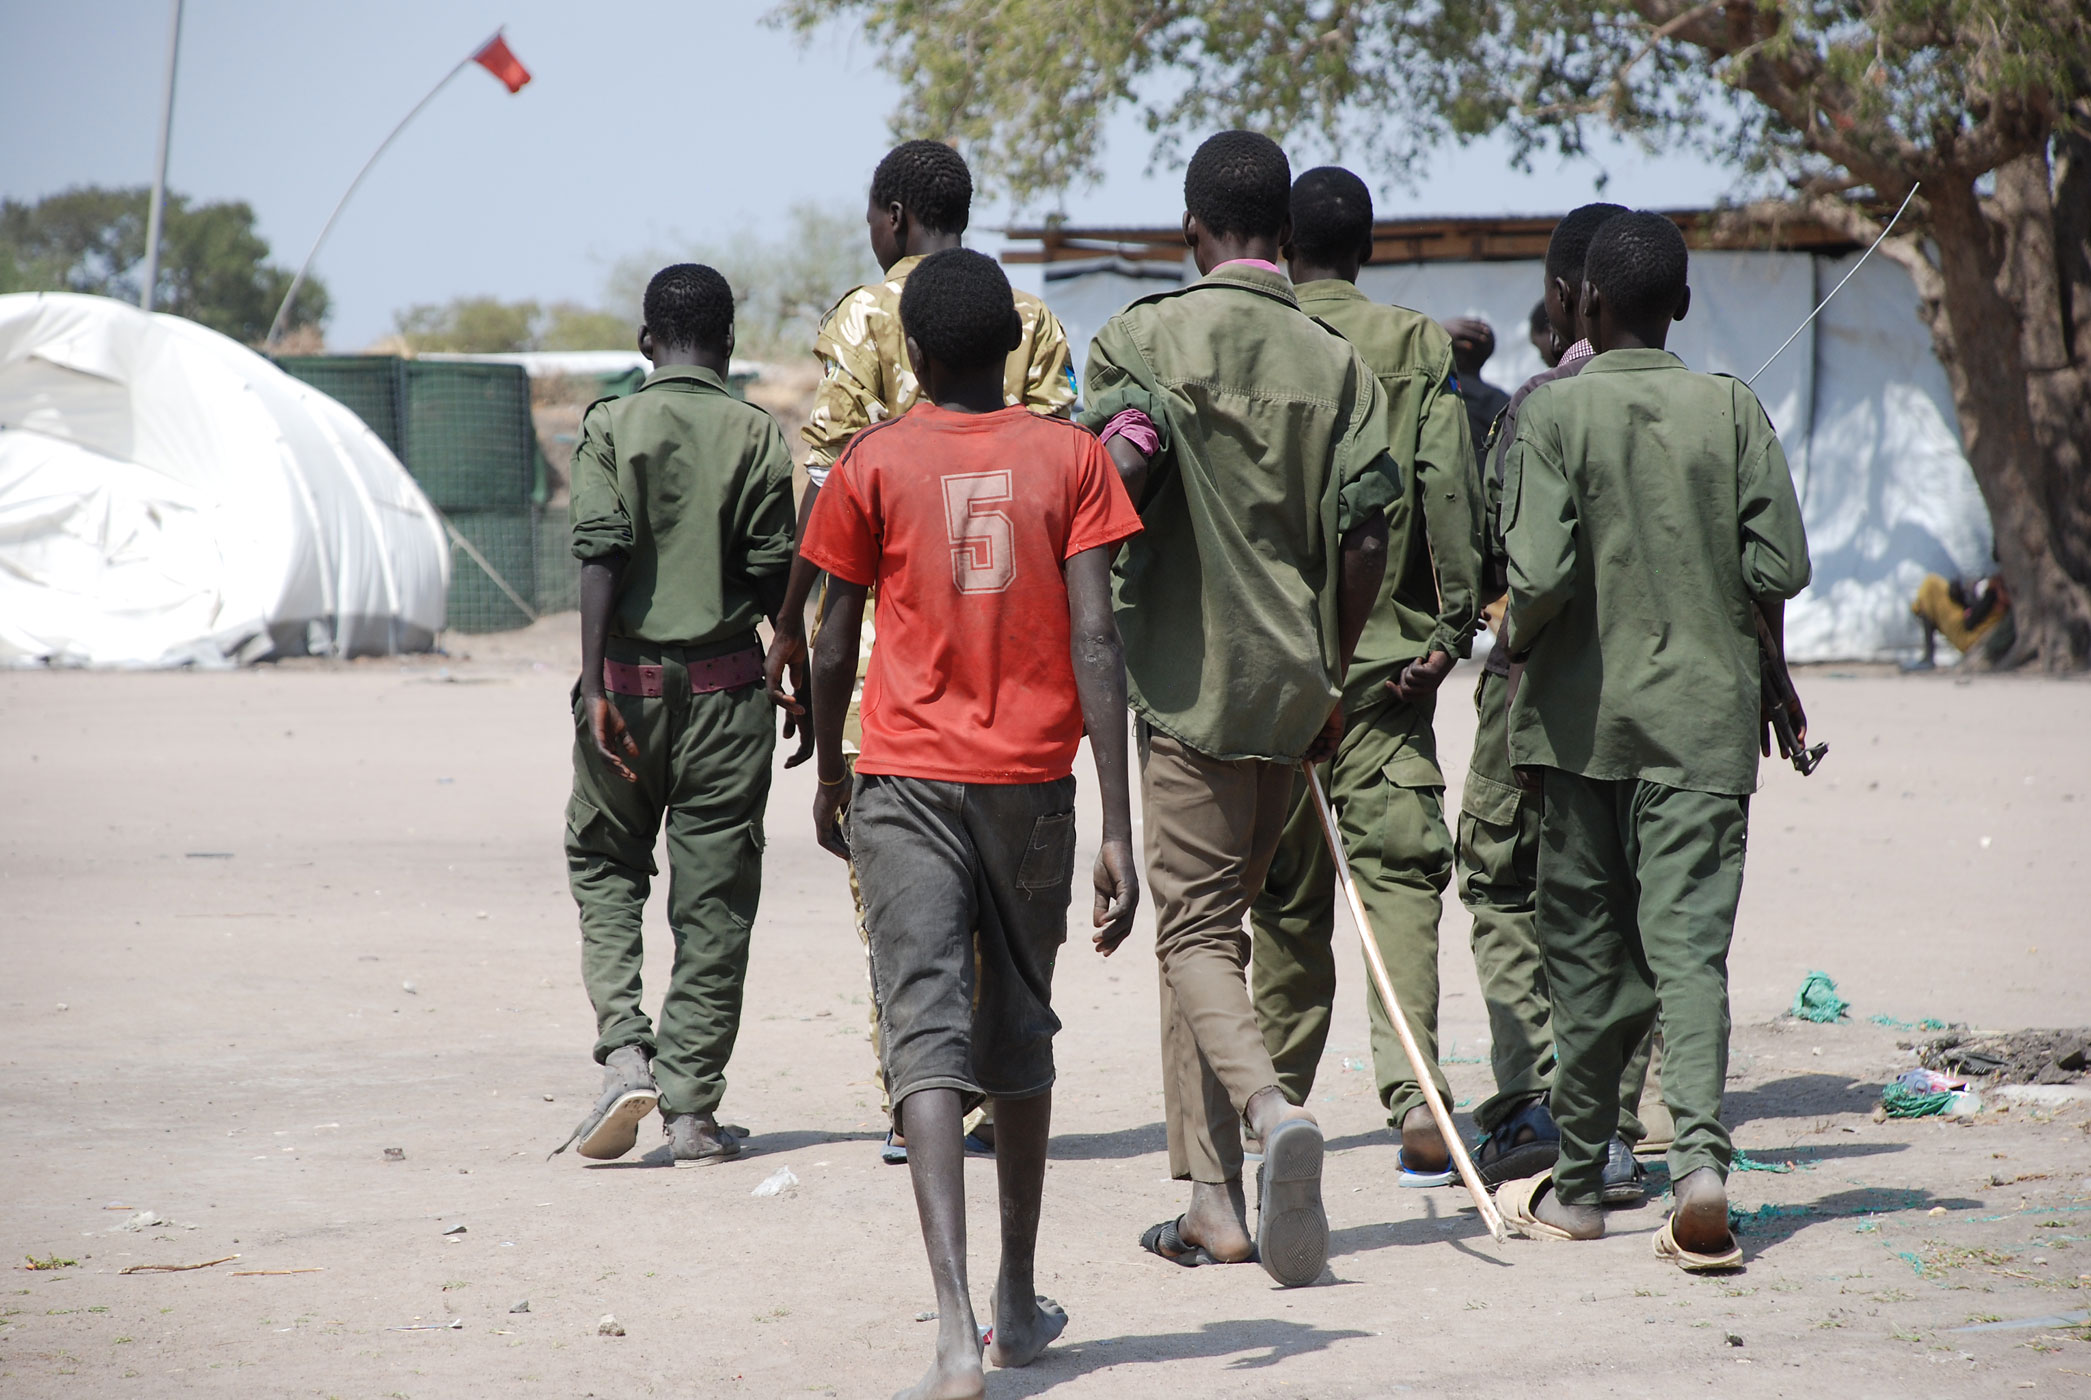 Child soldiers at Cobra camp in Gumuruk, South Sudan go to a demobilization ceremony.